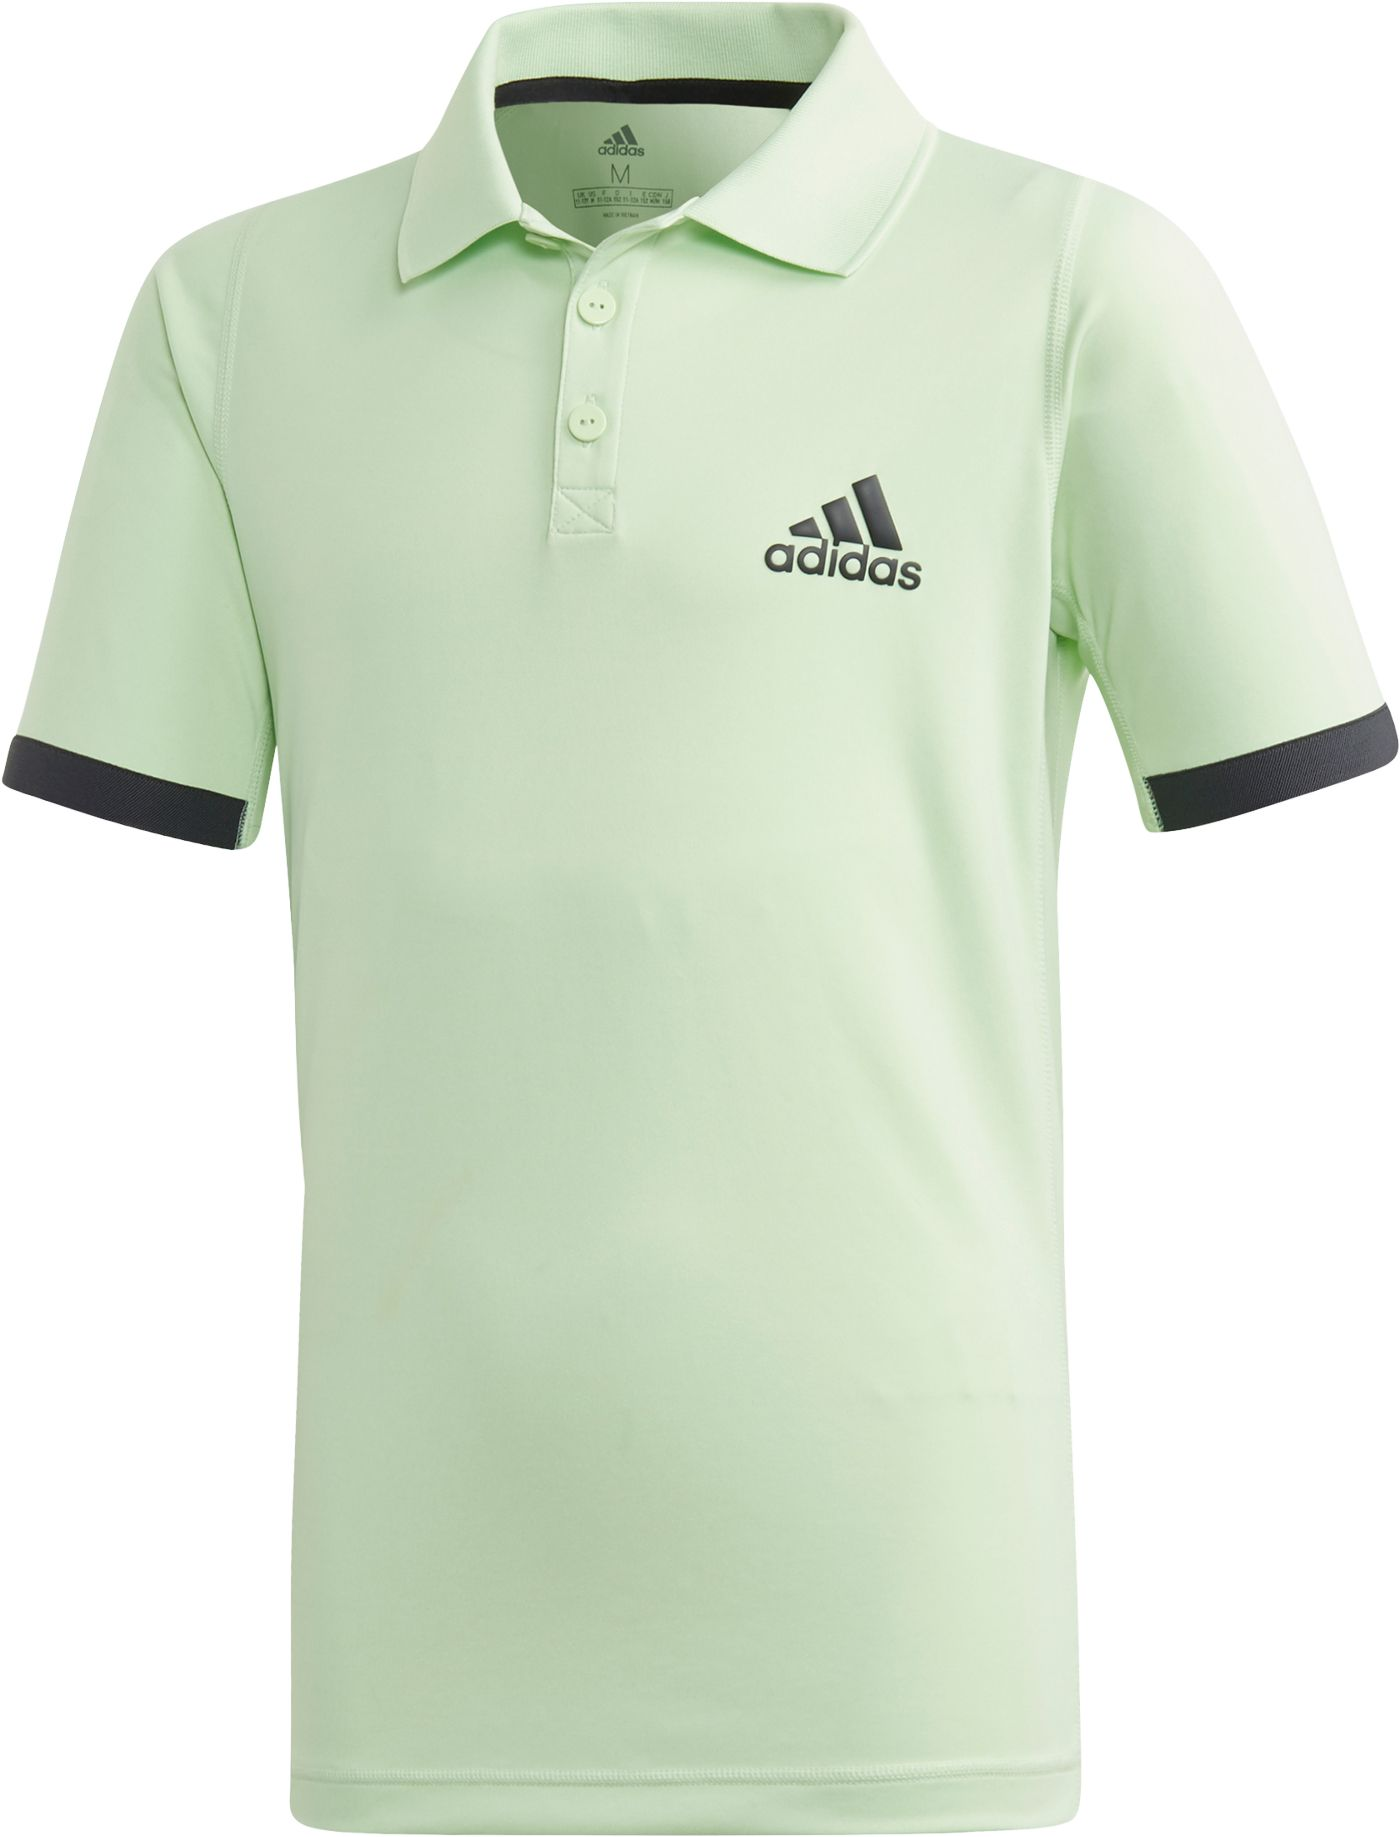 adidas Boys' New York Tennis Polo